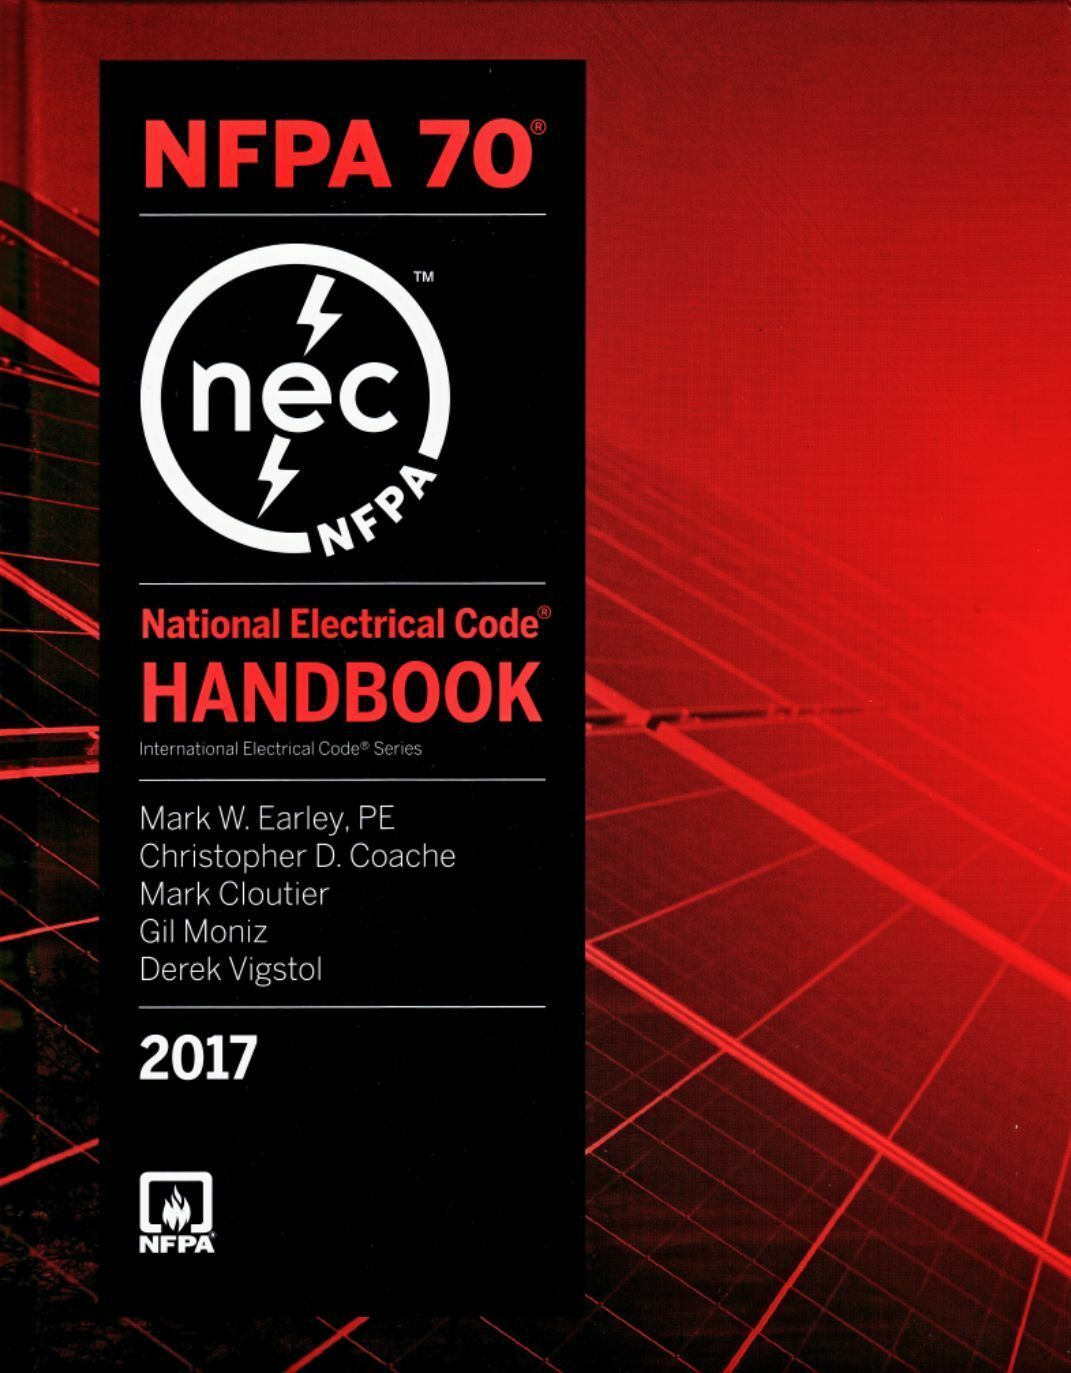 National electrical code books ebay nfpa 70 handbook national electrical code nec handbook 2017 edition new fandeluxe Images